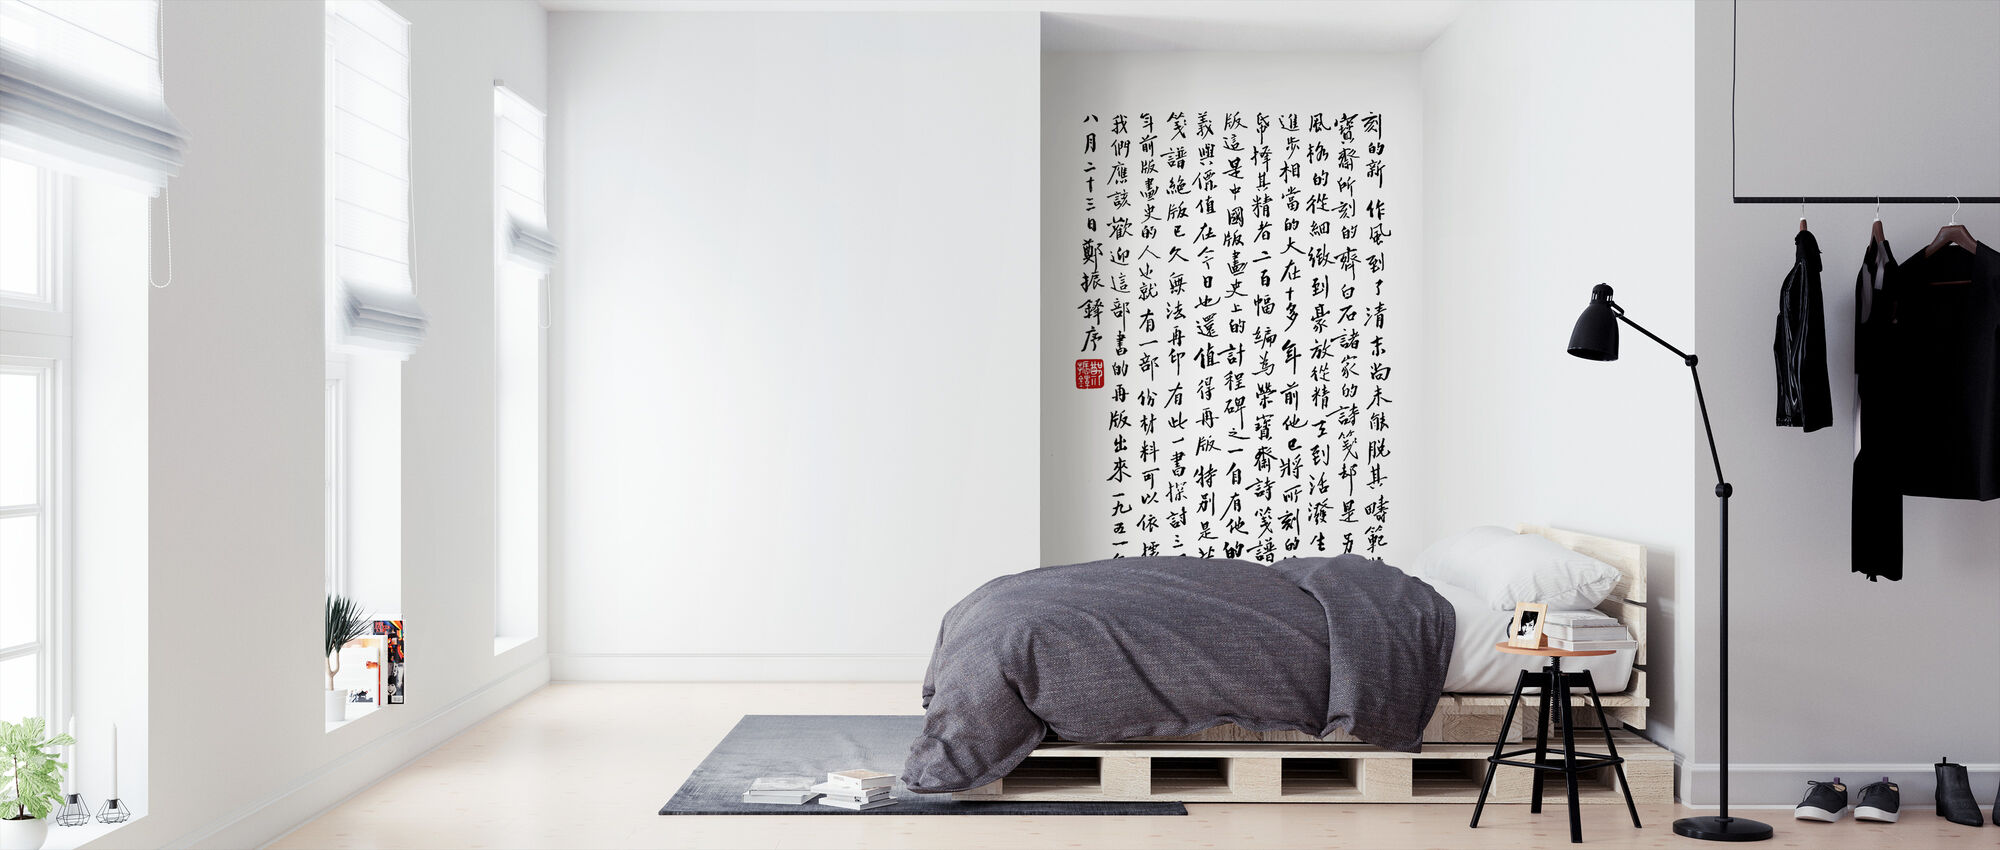 Chinese Characters - Wallpaper - Bedroom